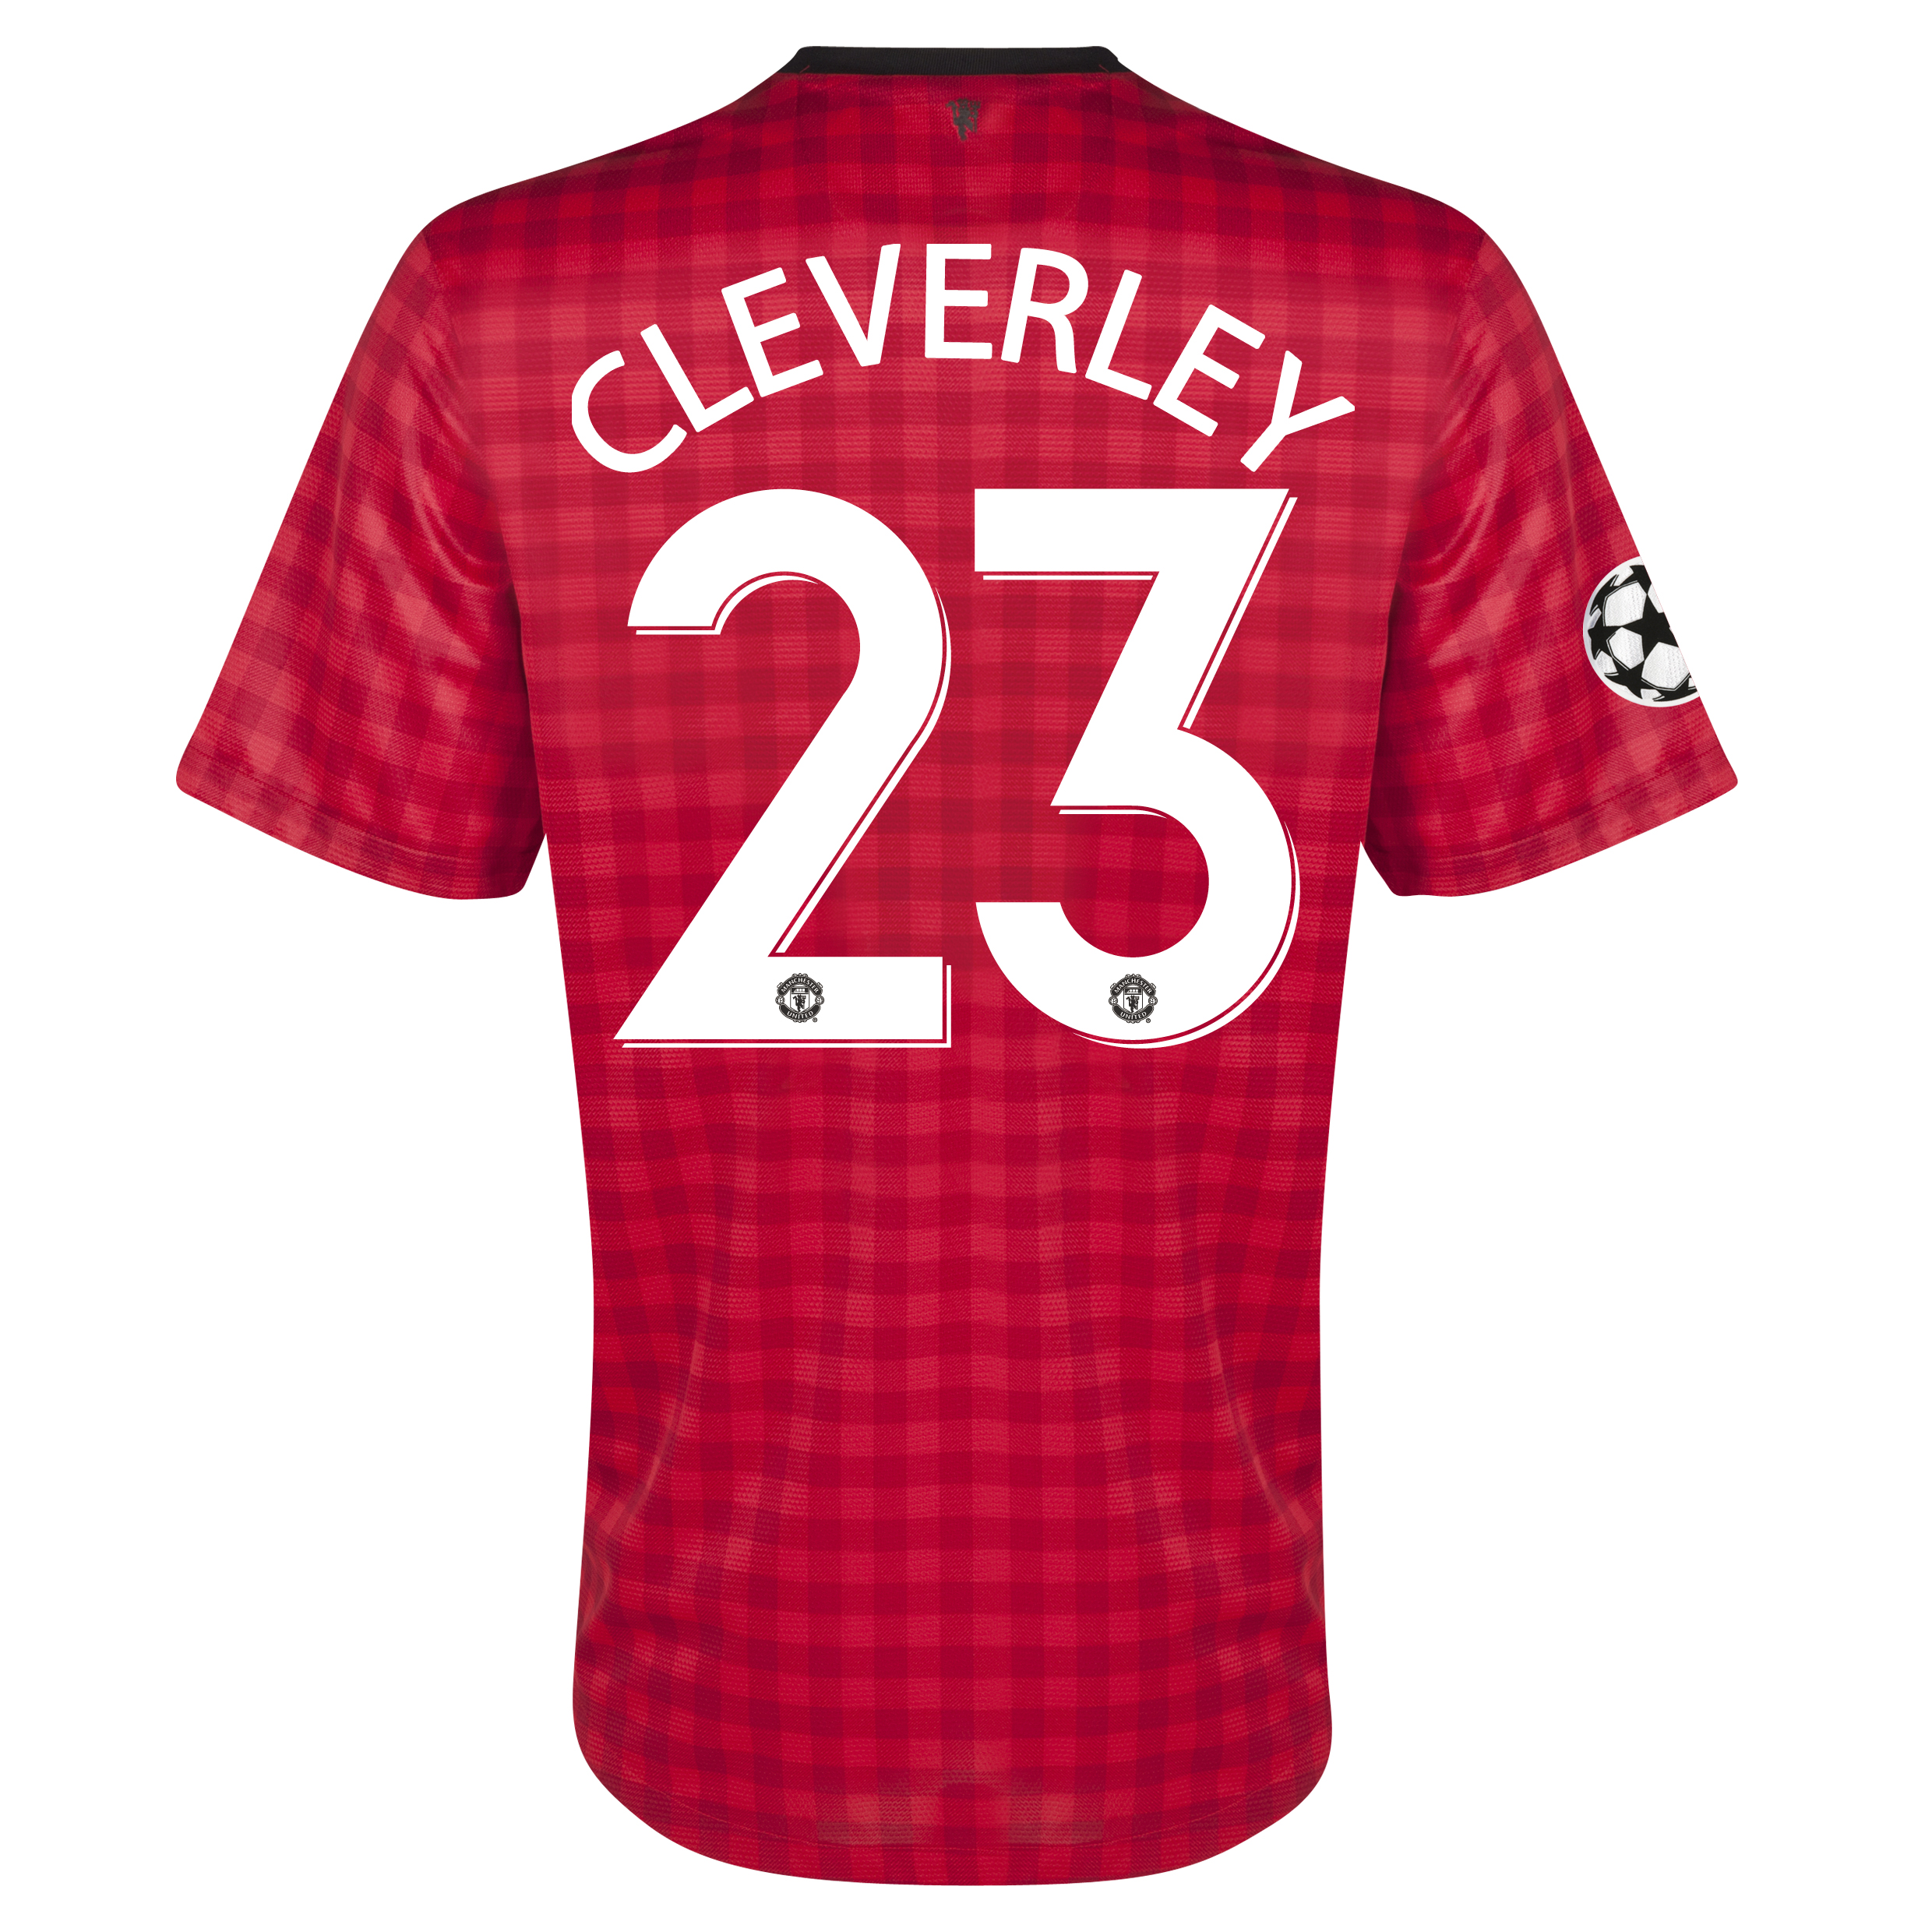 Manchester United UEFA Champions League Home Shirt 2012/13 with Cleverley 23 printing